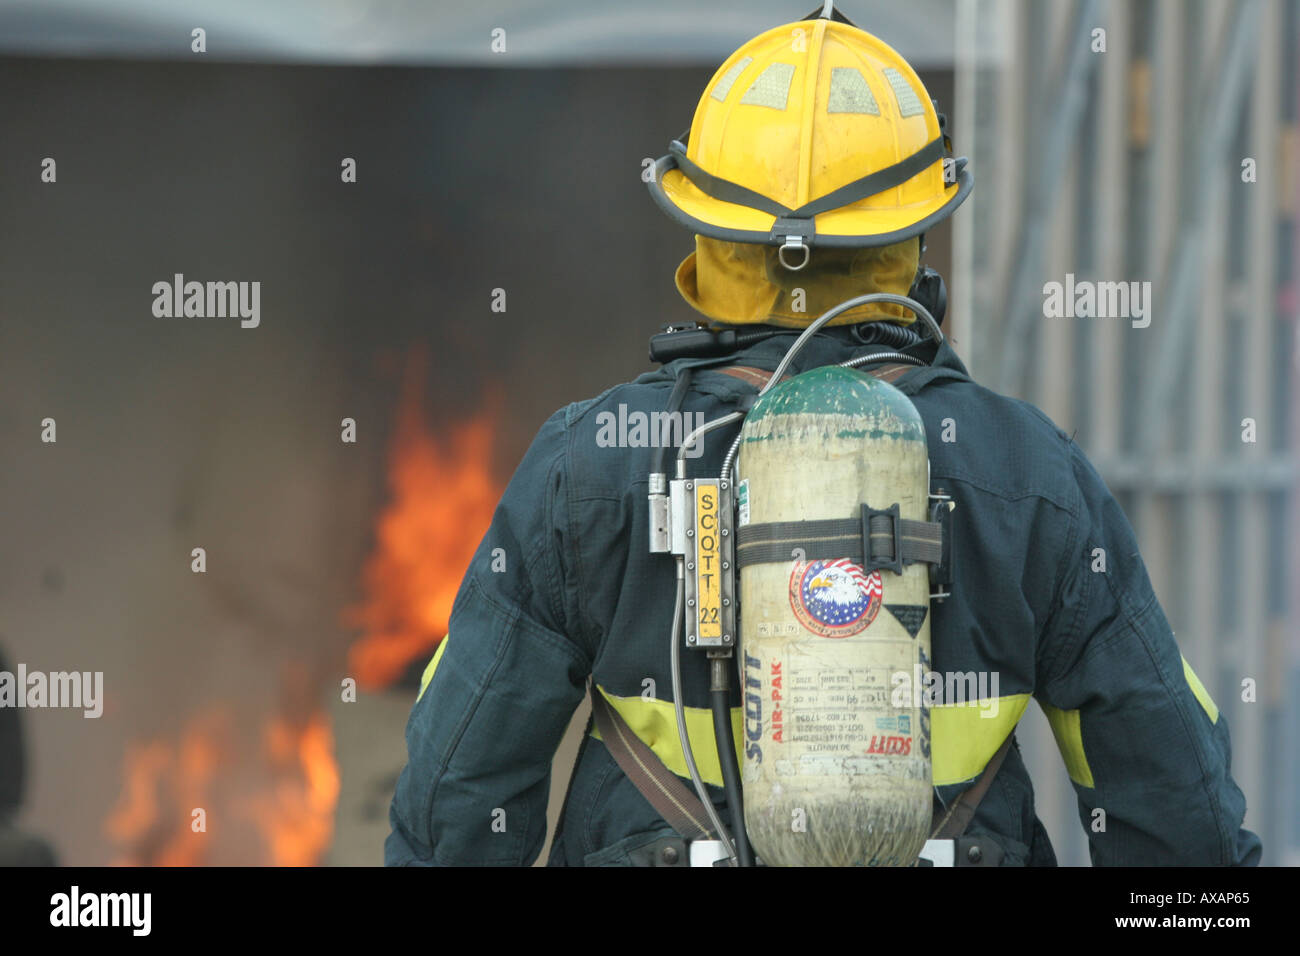 Fire fighter in yellow hat investigating flames in a container Stock Photo